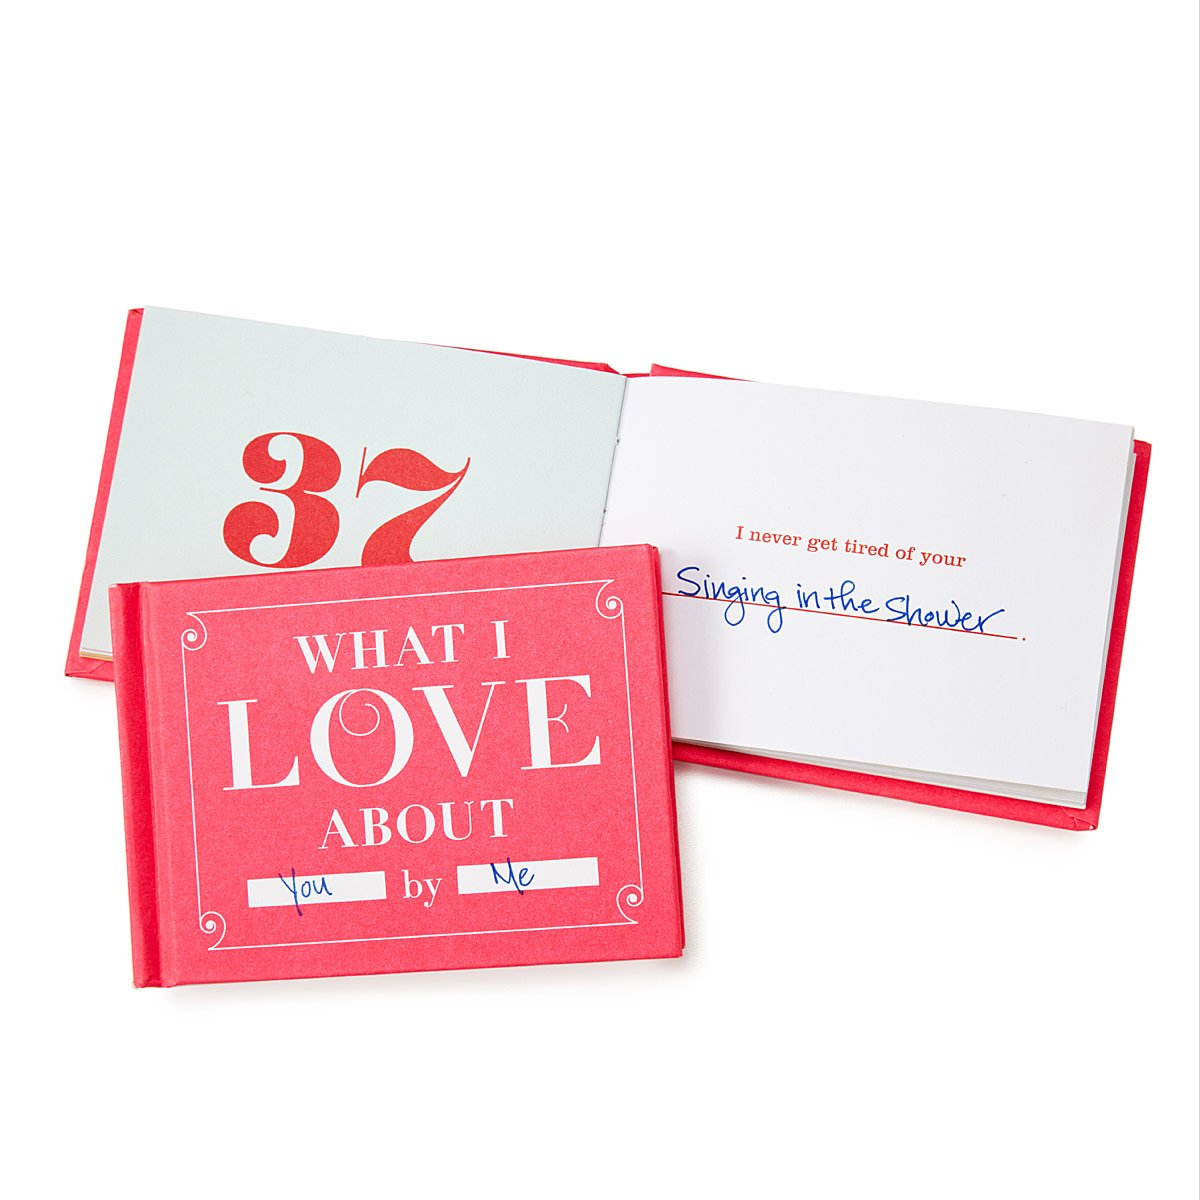 Gifts For Wife Part - 48: What I Love About You By Me Book